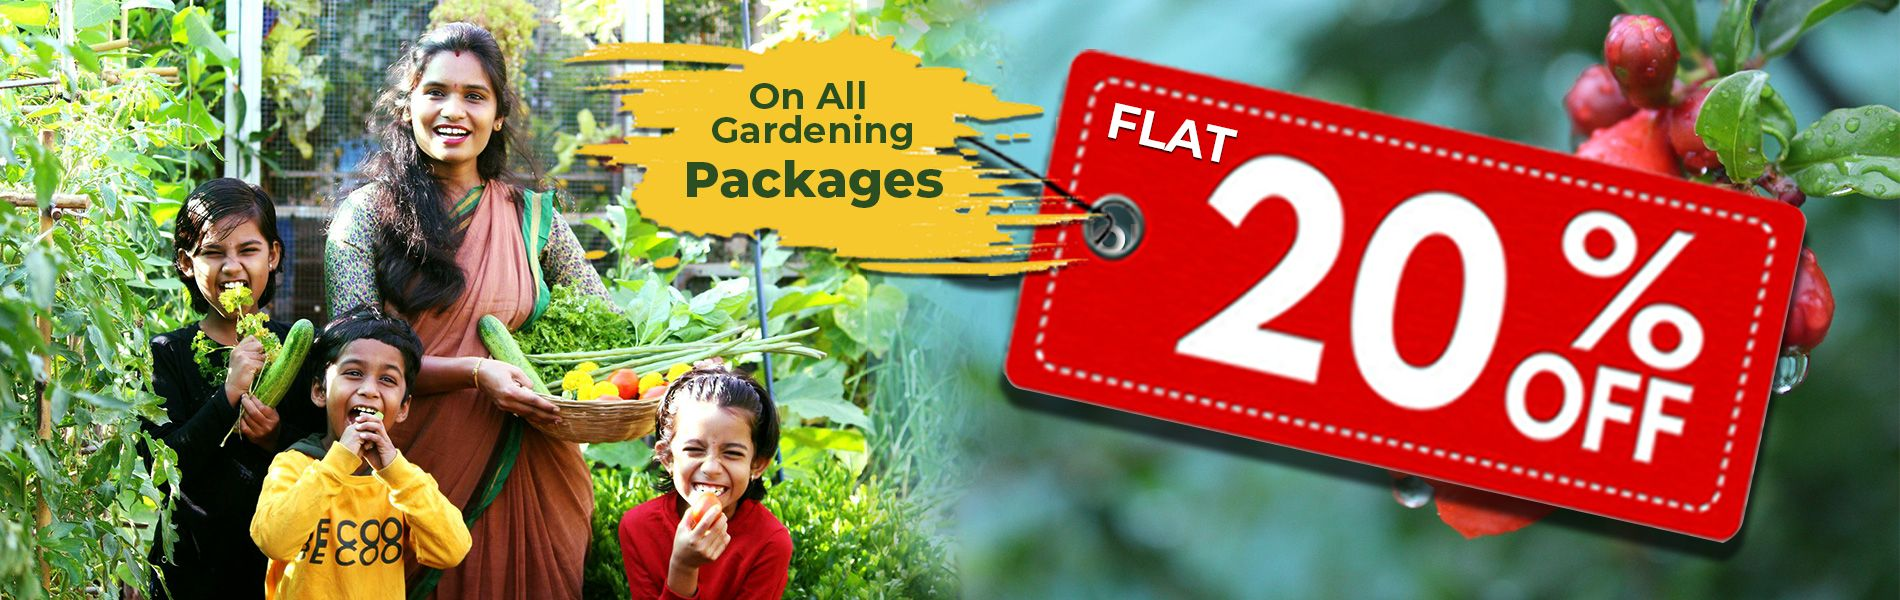 https://www.mydreamgarden.in/gardening-packages/terrace-gardening-magic-planter-box-packages.html